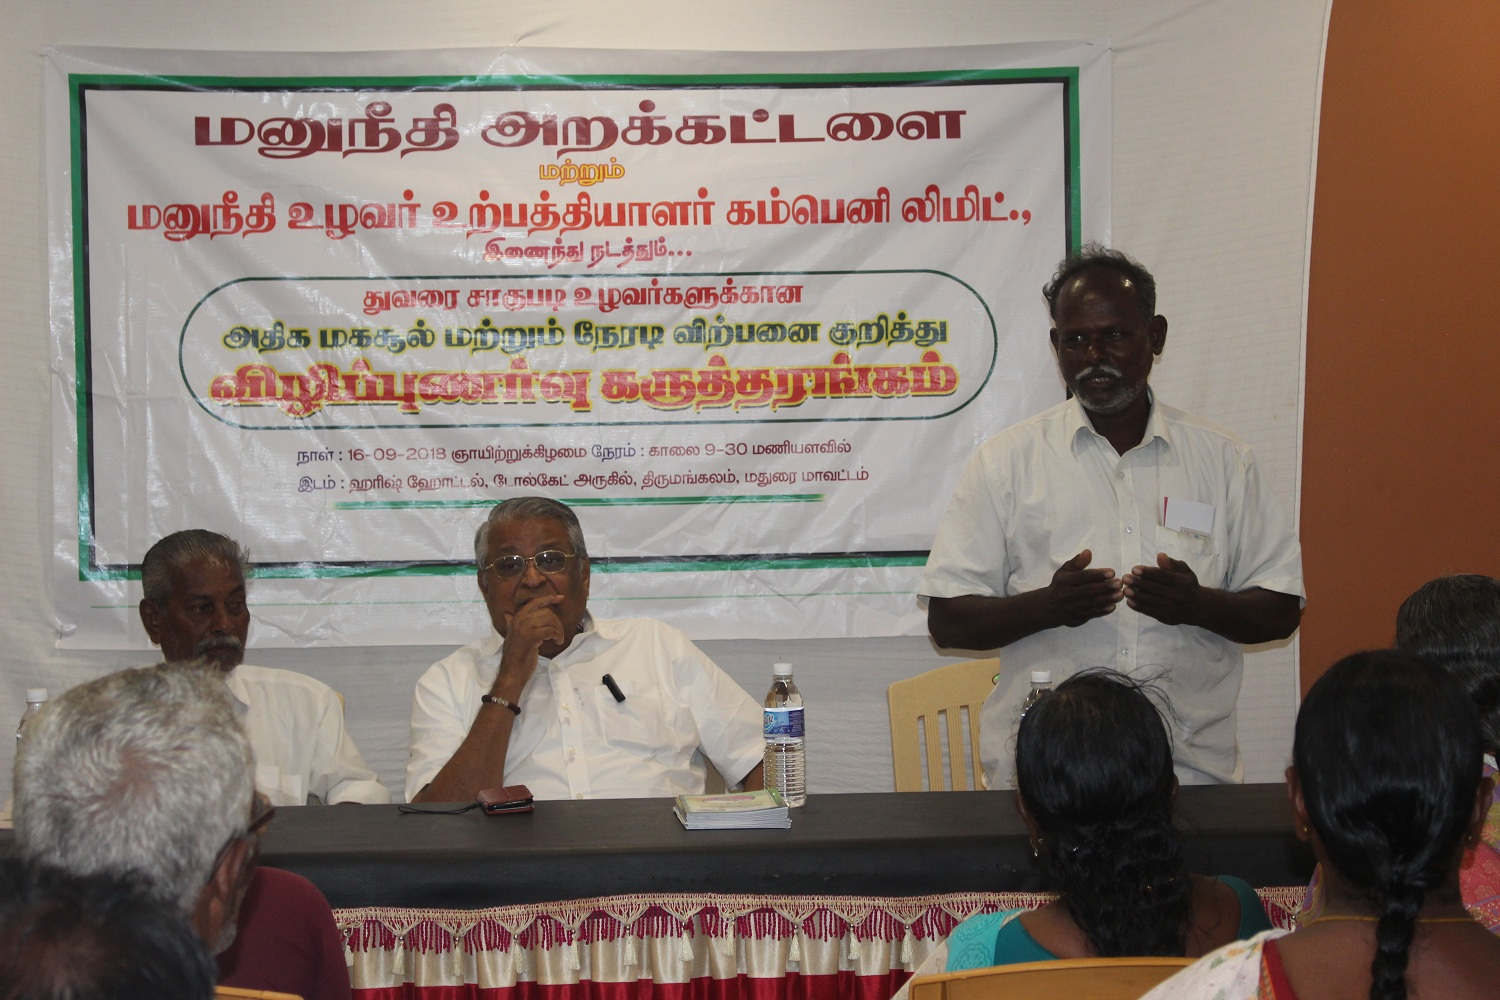 Madurai farmers - manuneethi foundation